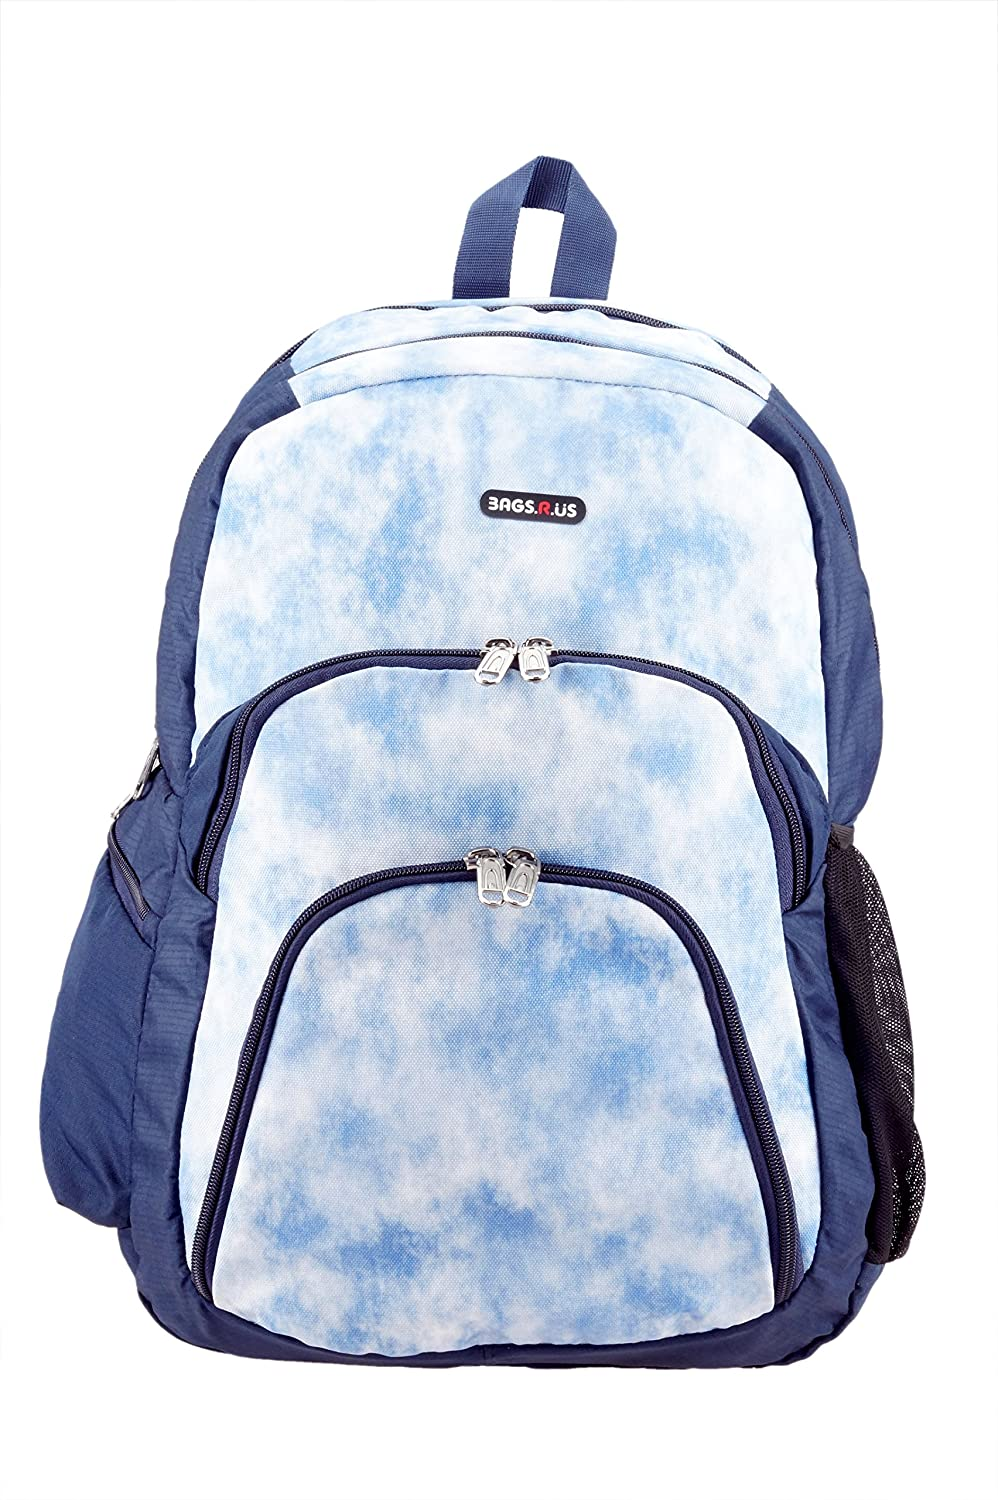 501ff8c31036 BagsRUs Atlas Navy Blue Polyester 18 Liter 15.6 Inch Laptop Backpack Travel  Bag (LB117FNB)  Amazon.in  Bags